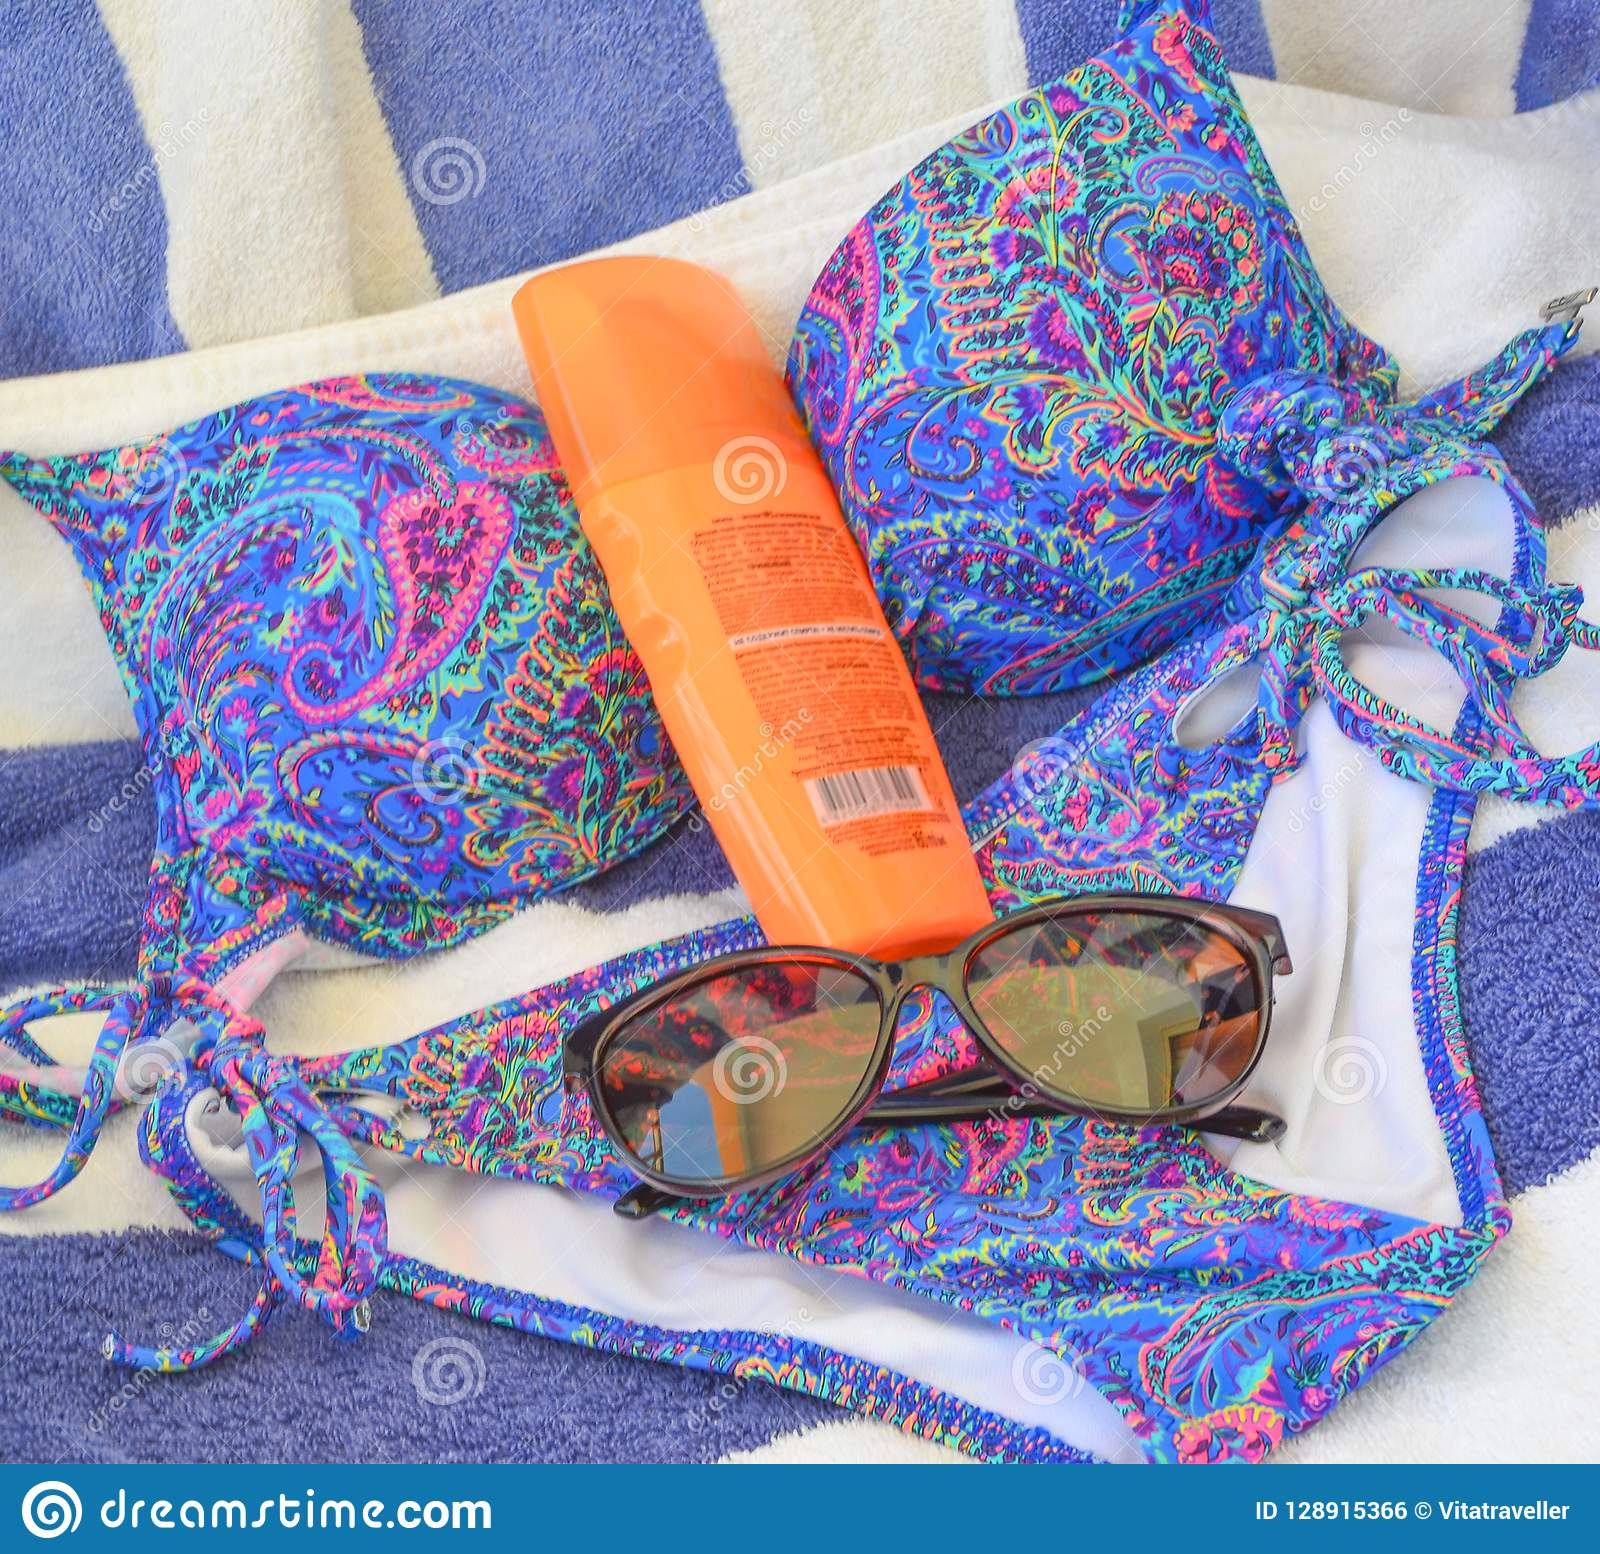 ff307f3886 Beachware And Accesories On Blue-white Towel Background. Stock Photo ...